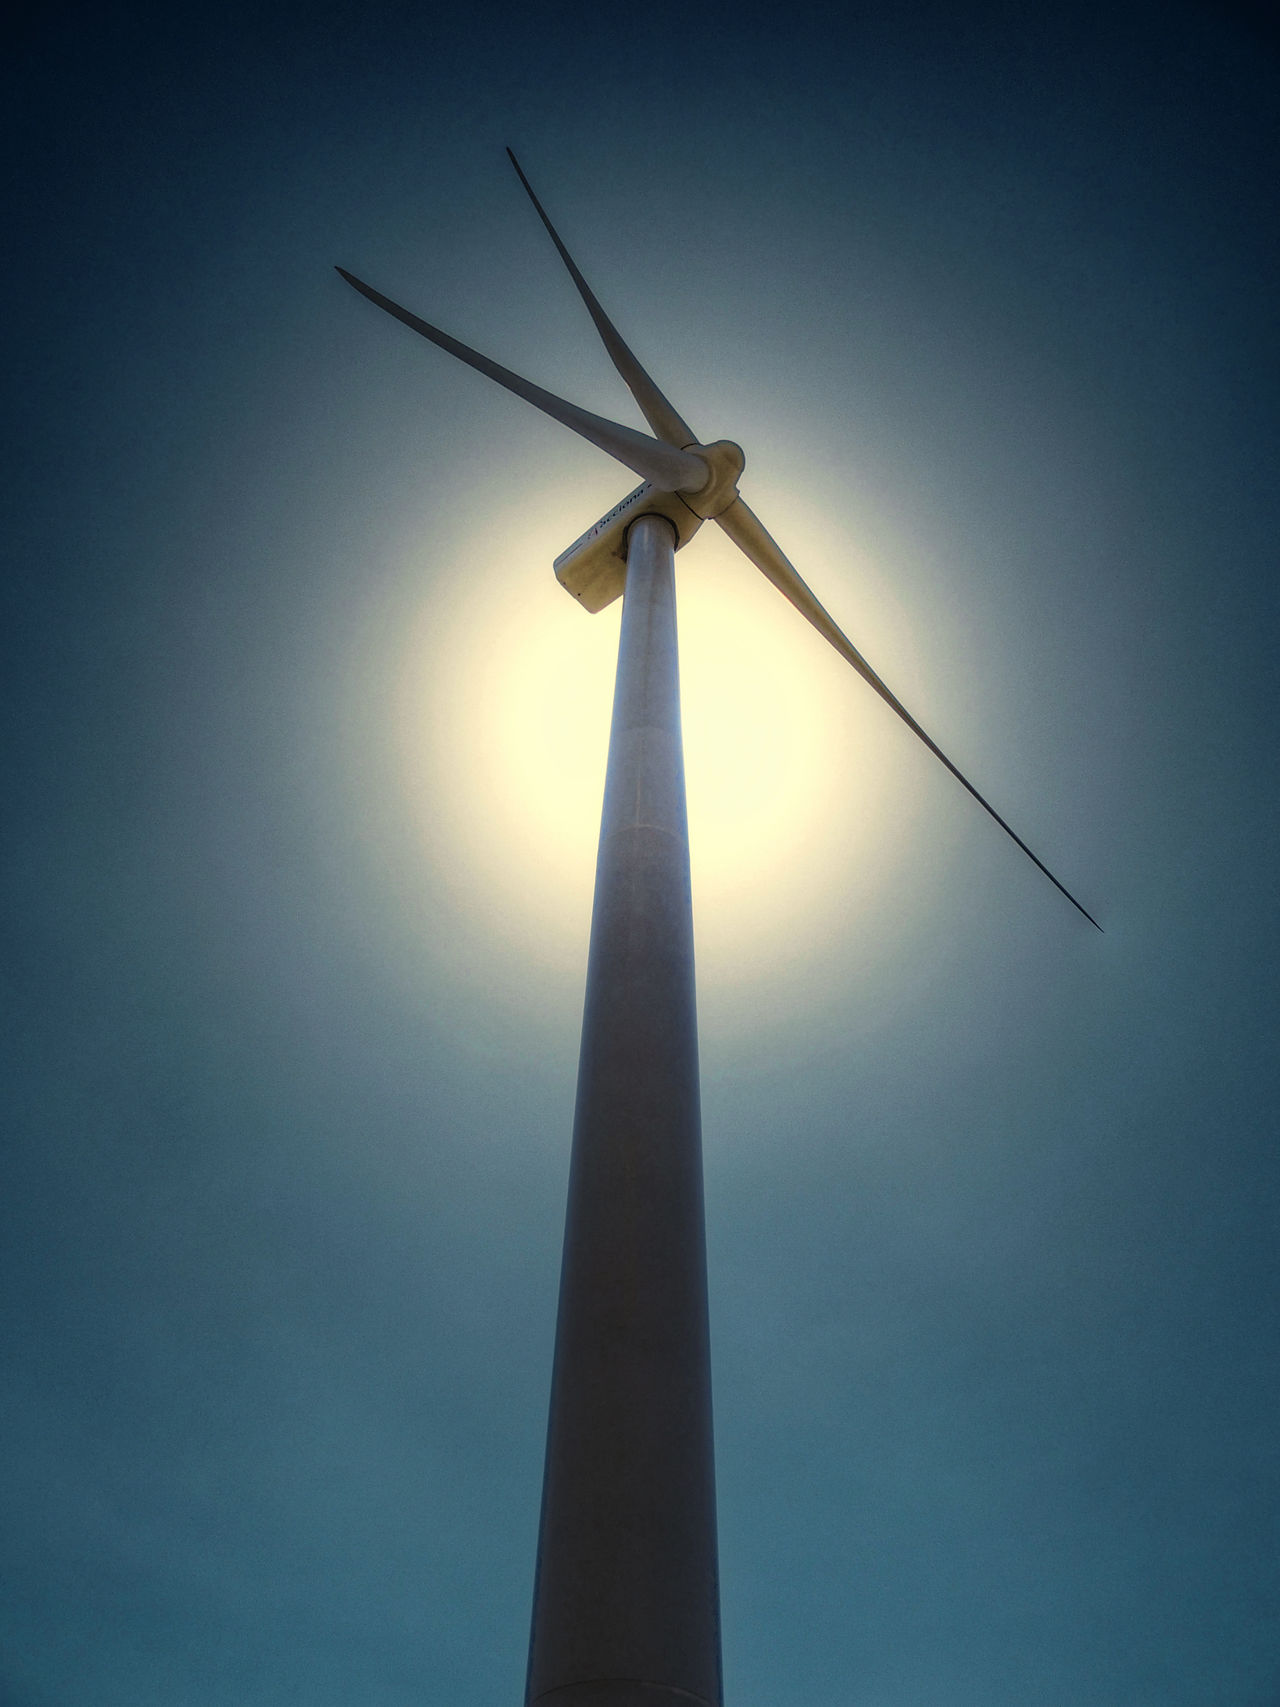 Clean Energy Generator Alternative Energy Day Environmental Conservation Fuel And Power Generation Industrial Windmill Low Angle View Nature No People Outdoors Renewable Energy Rural Scene Sky Technology Traditional Windmill Wind Power Wind Turbine Windmill